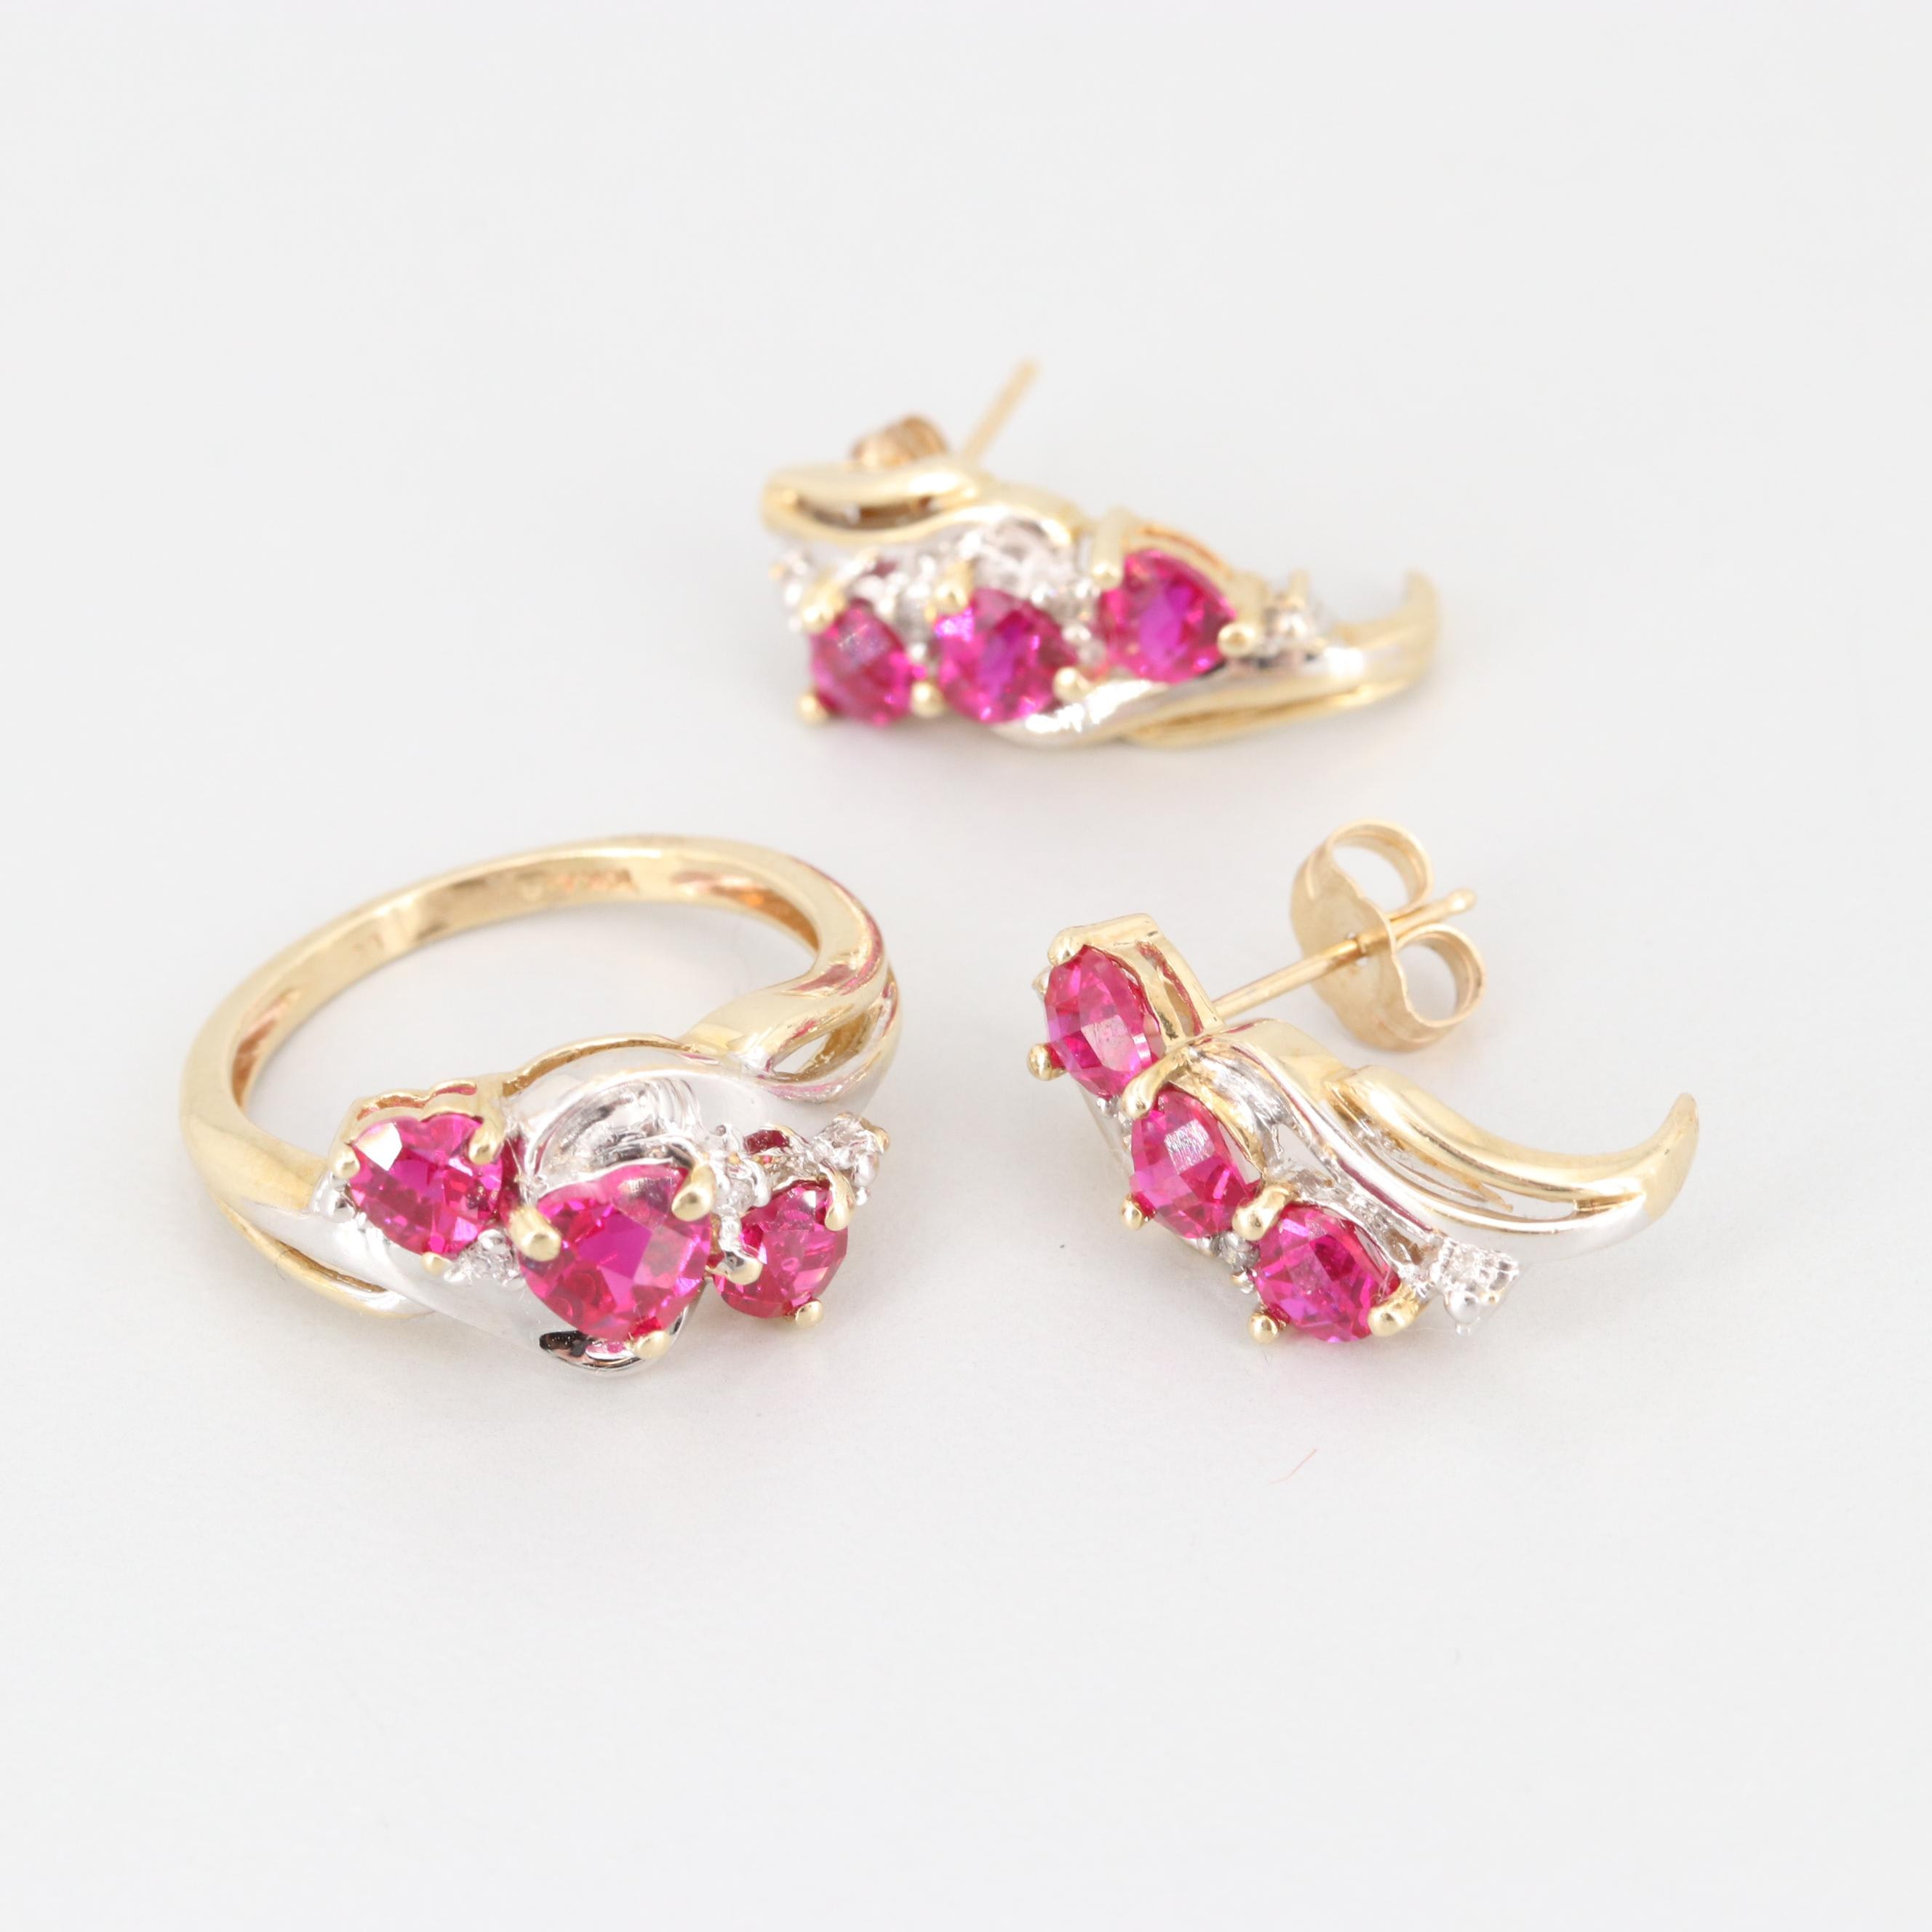 Alwand Vahan 10K Yellow Gold Synthetic Ruby and Diamond Earrings and Ring